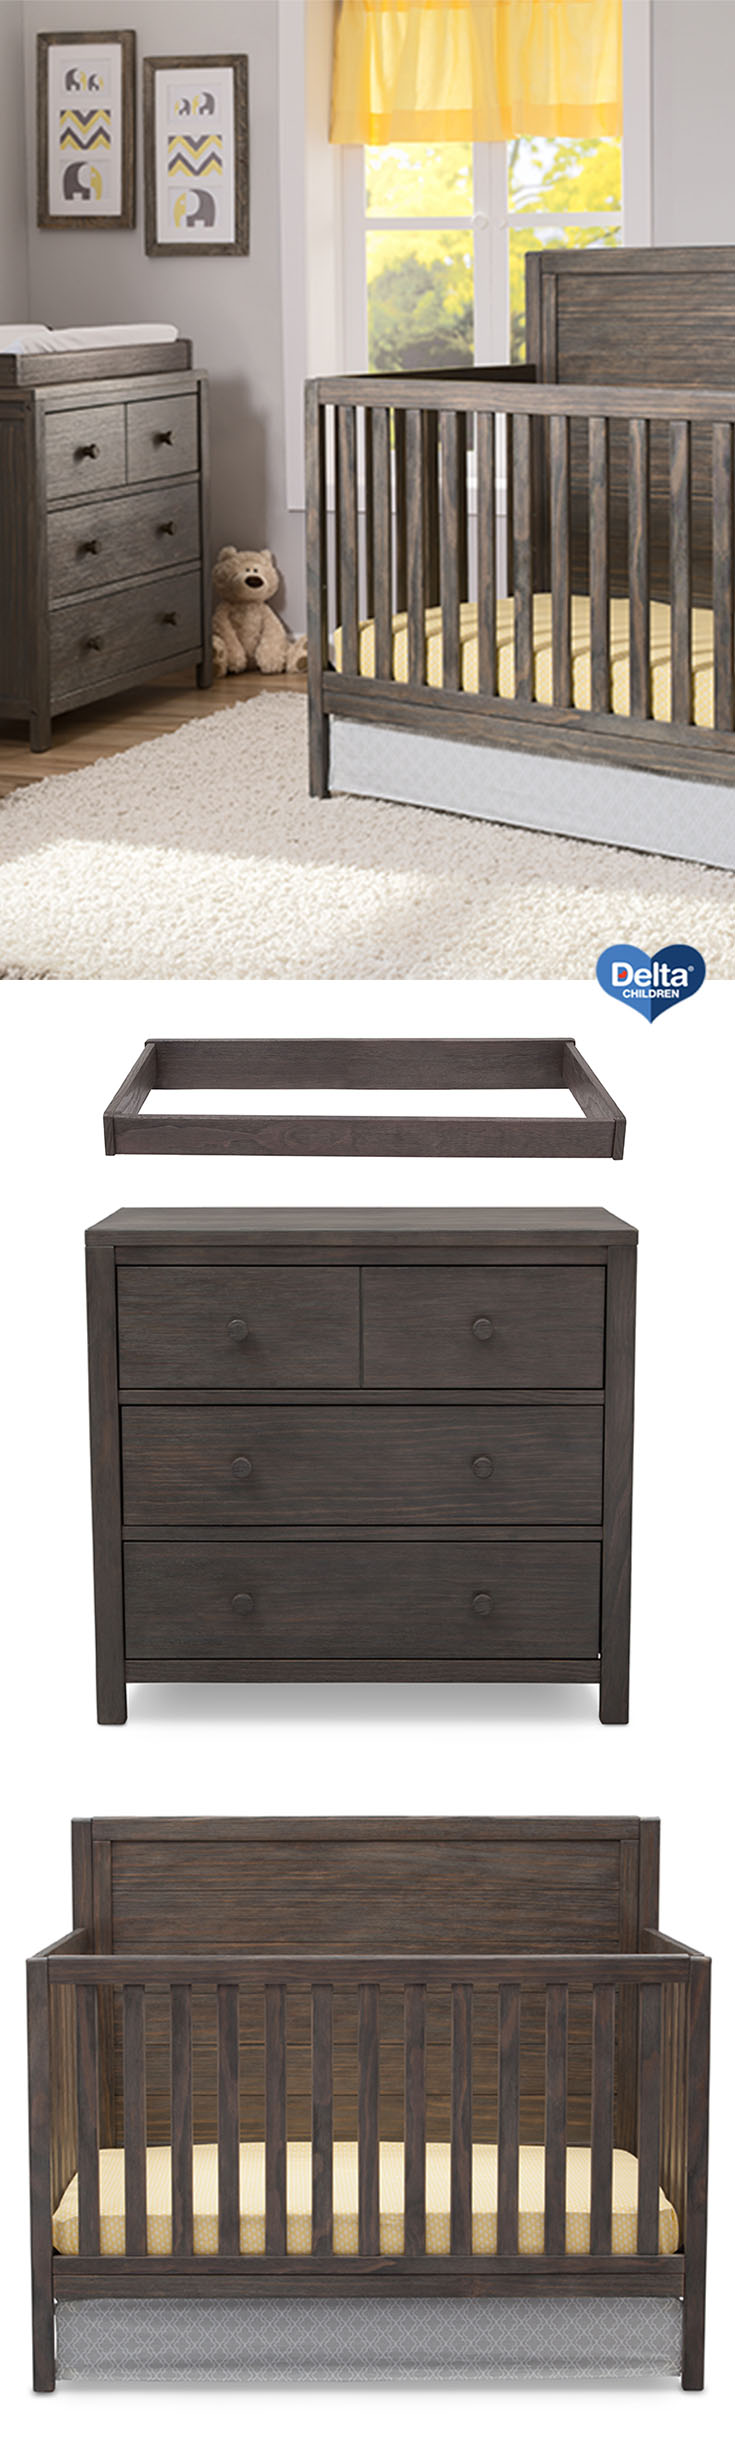 rustic grey crib on delta children cambridge mix and match 4 in 1 convertible crib rustic gray walmart com in 2021 baby cribs best baby cribs rustic wood bed delta children cambridge mix and match